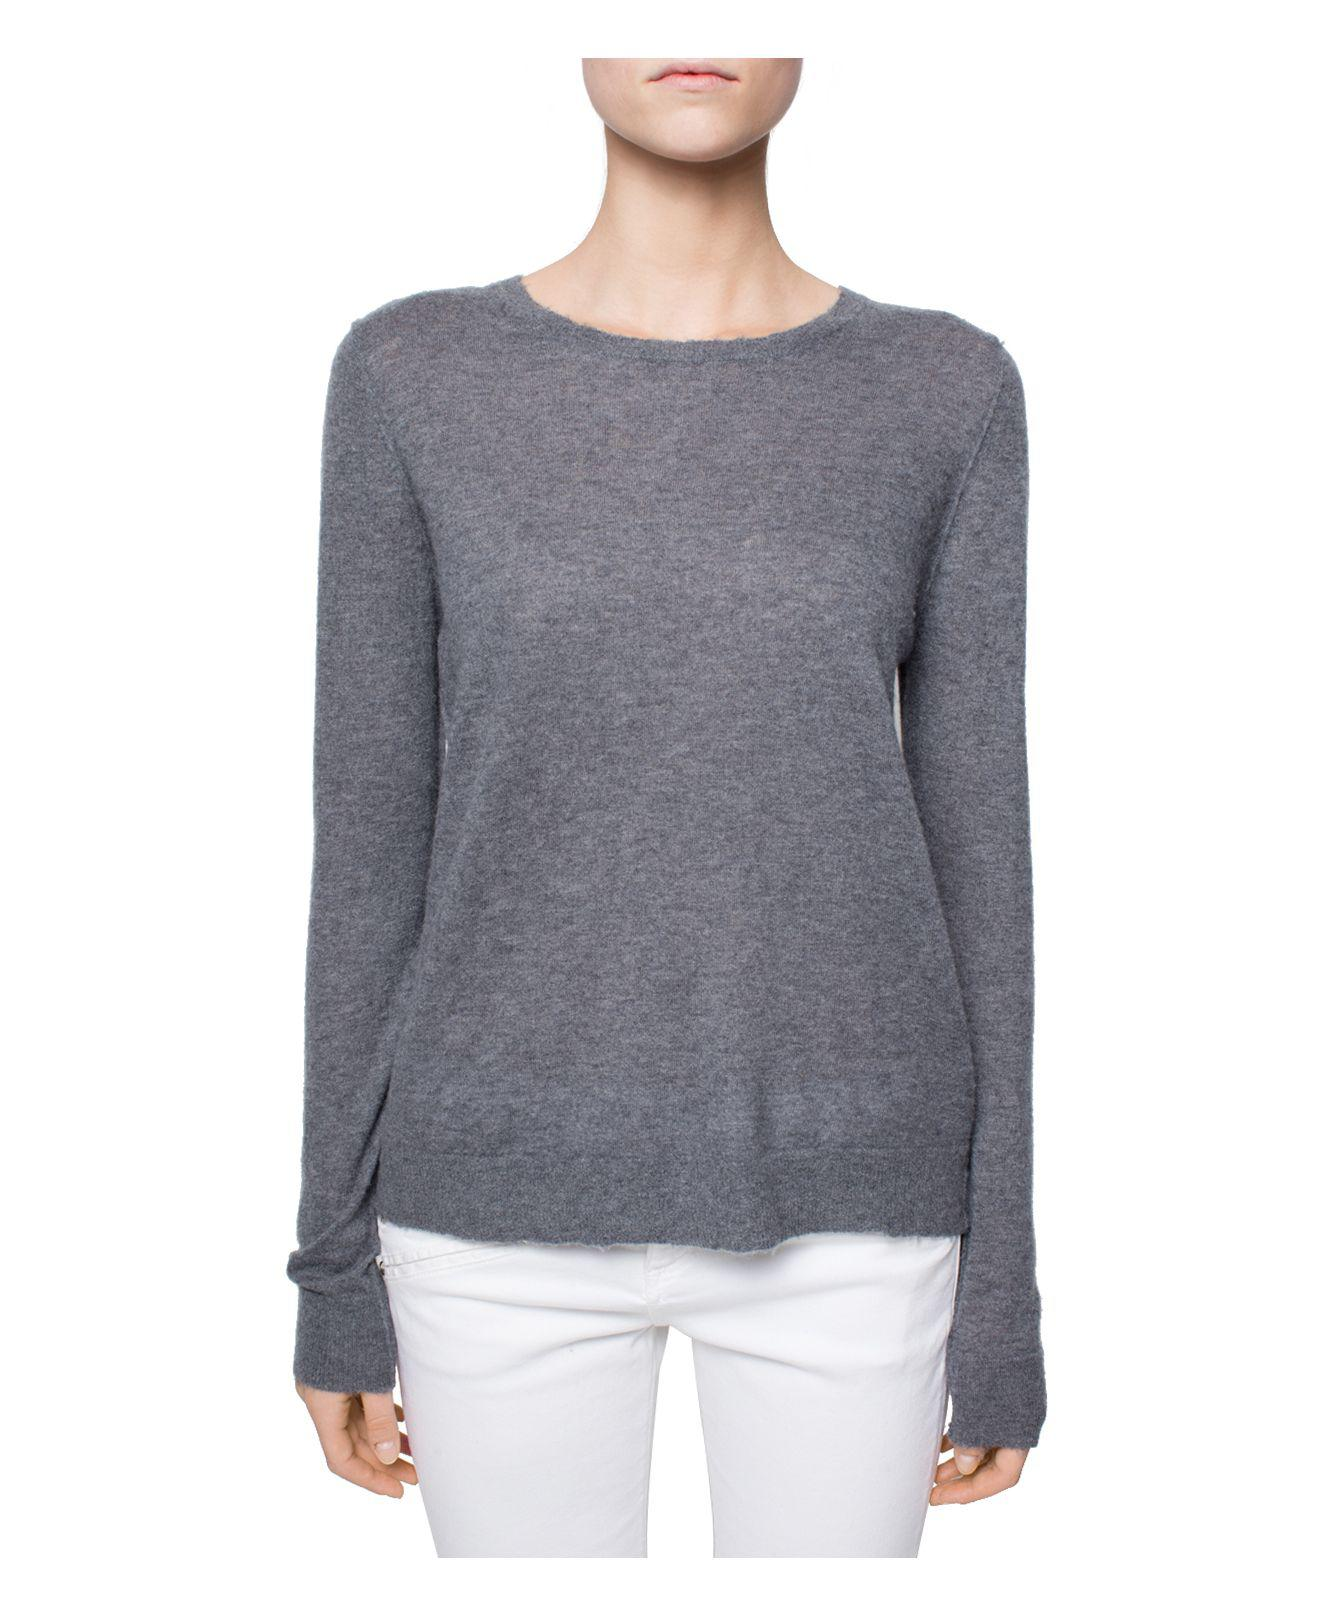 Zadig & voltaire Miss Cashmere Sweater in Gray | Lyst